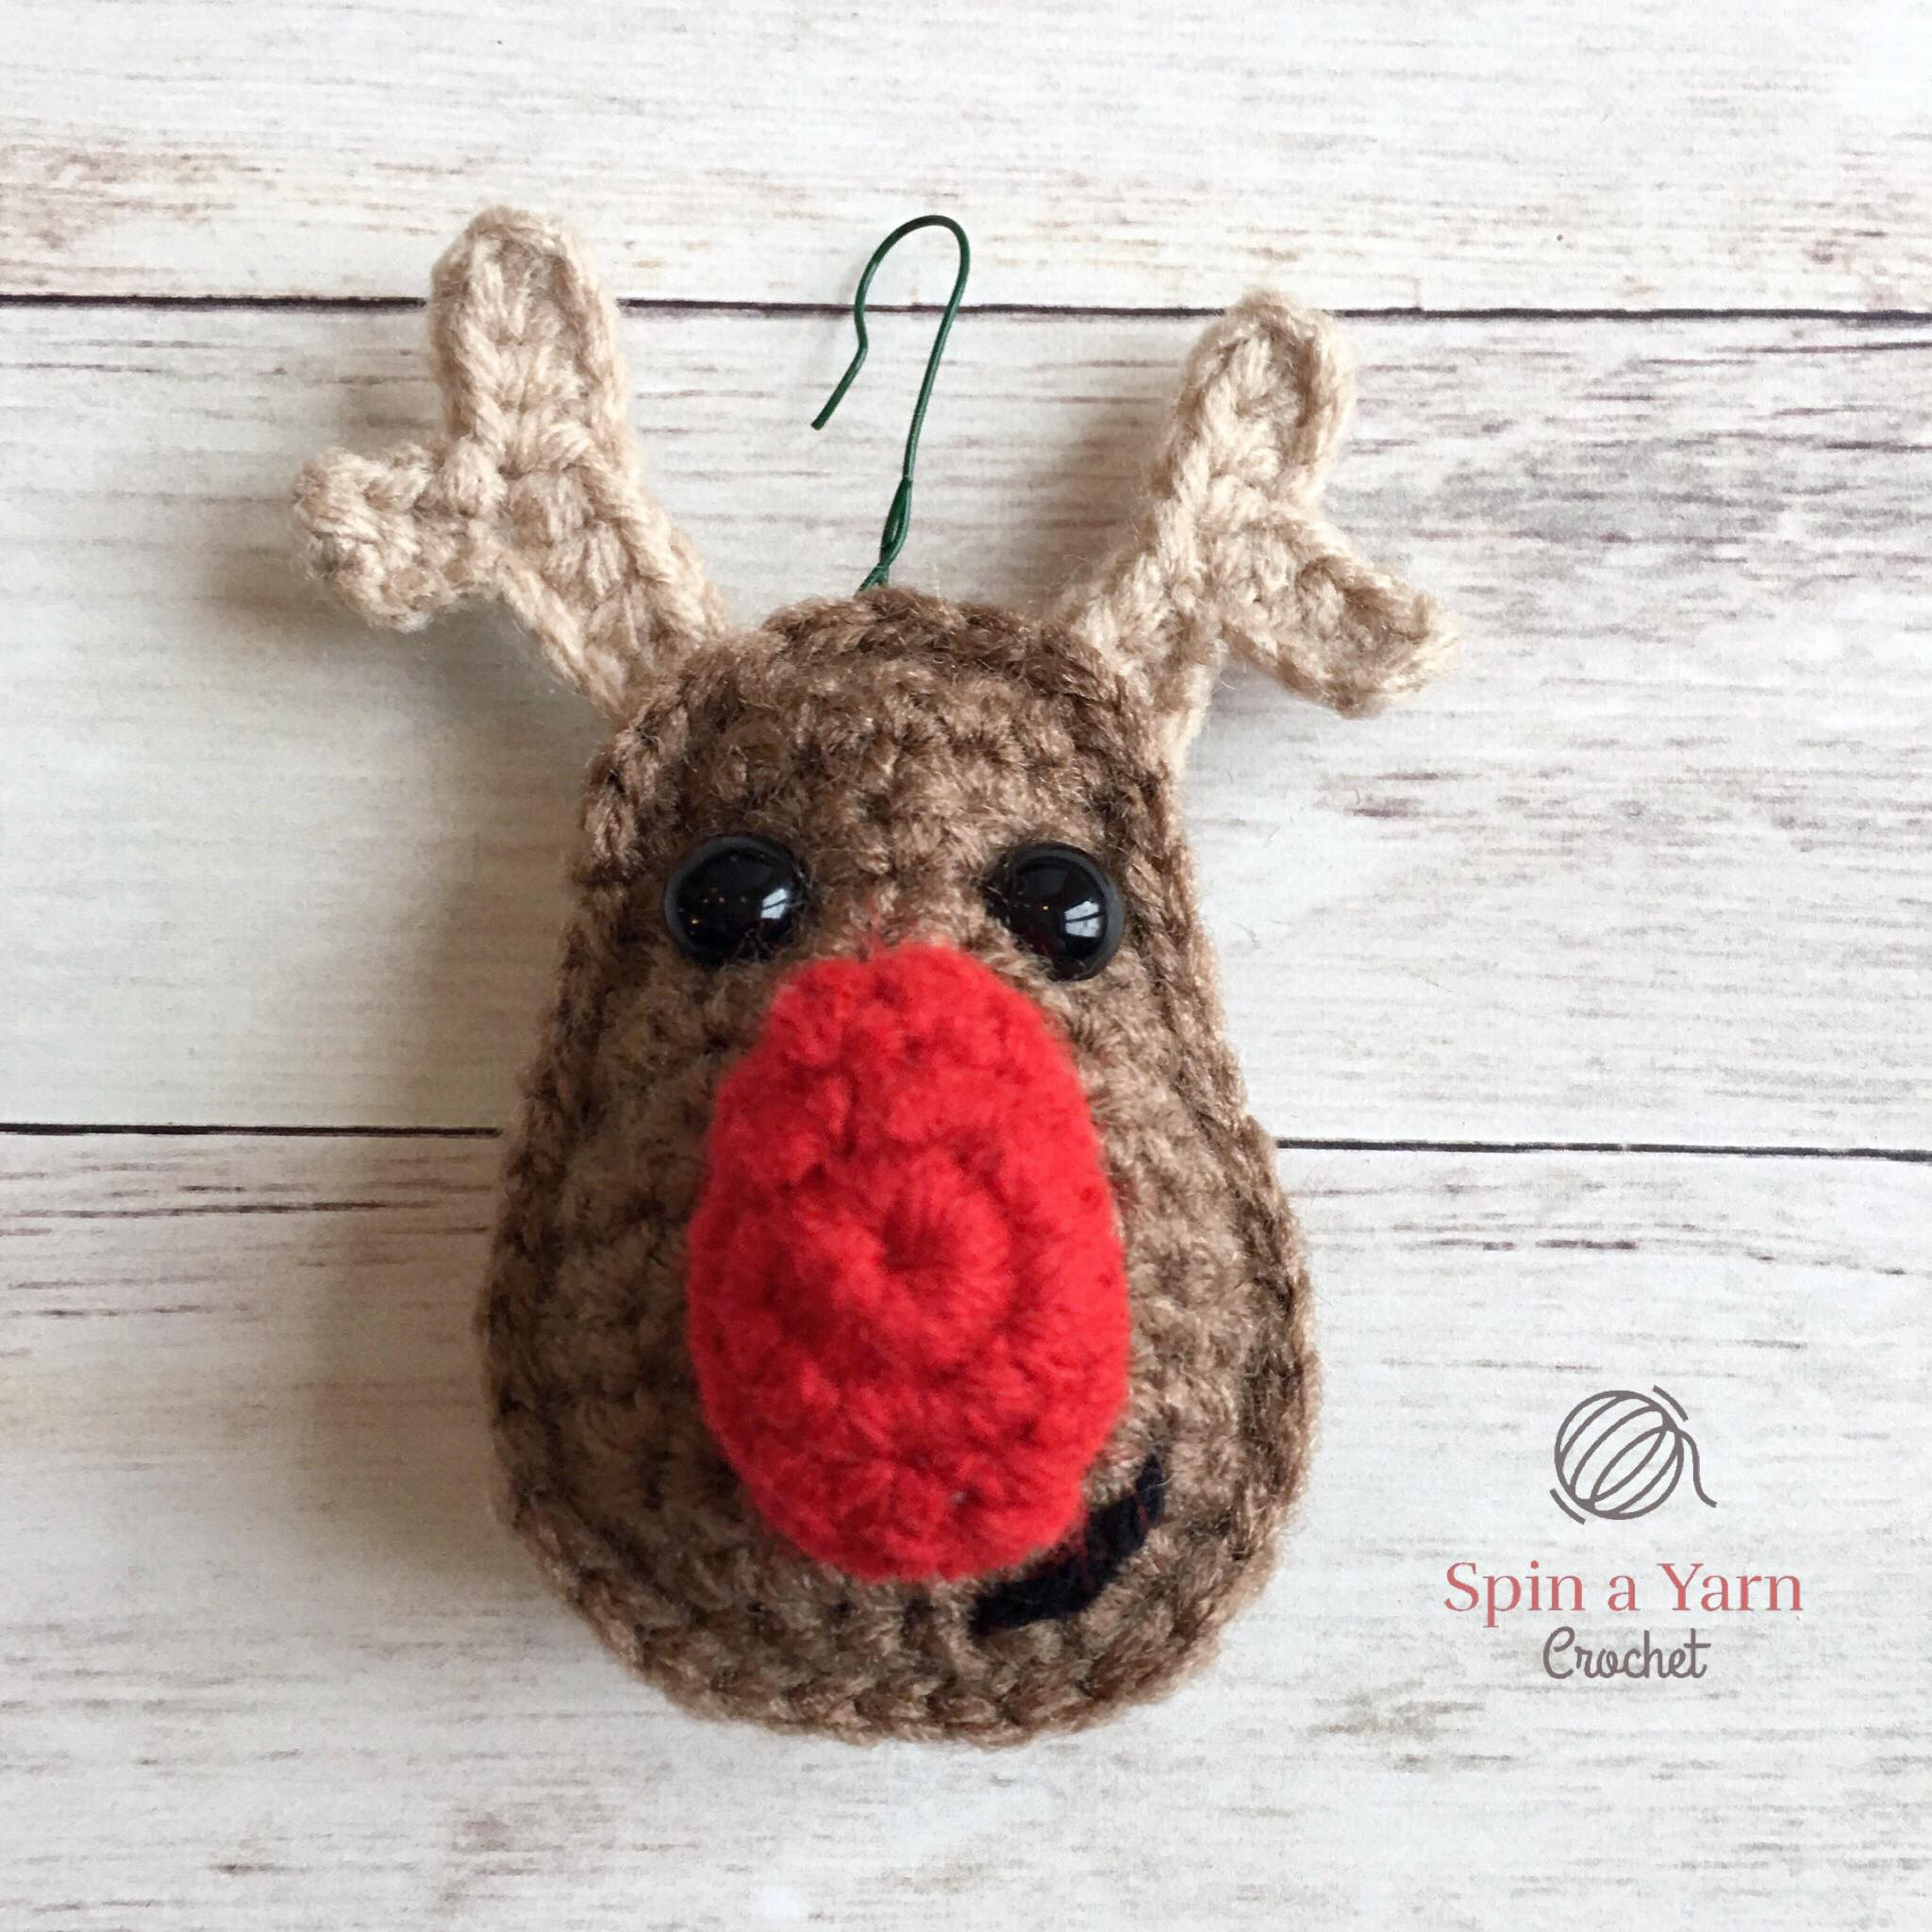 Reindeer sewing pattern image collections craft decoration ideas reindeer ornament free crochet pattern spin a yarn crochet reindeer ornament jeuxipadfo image collections bankloansurffo Choice Image